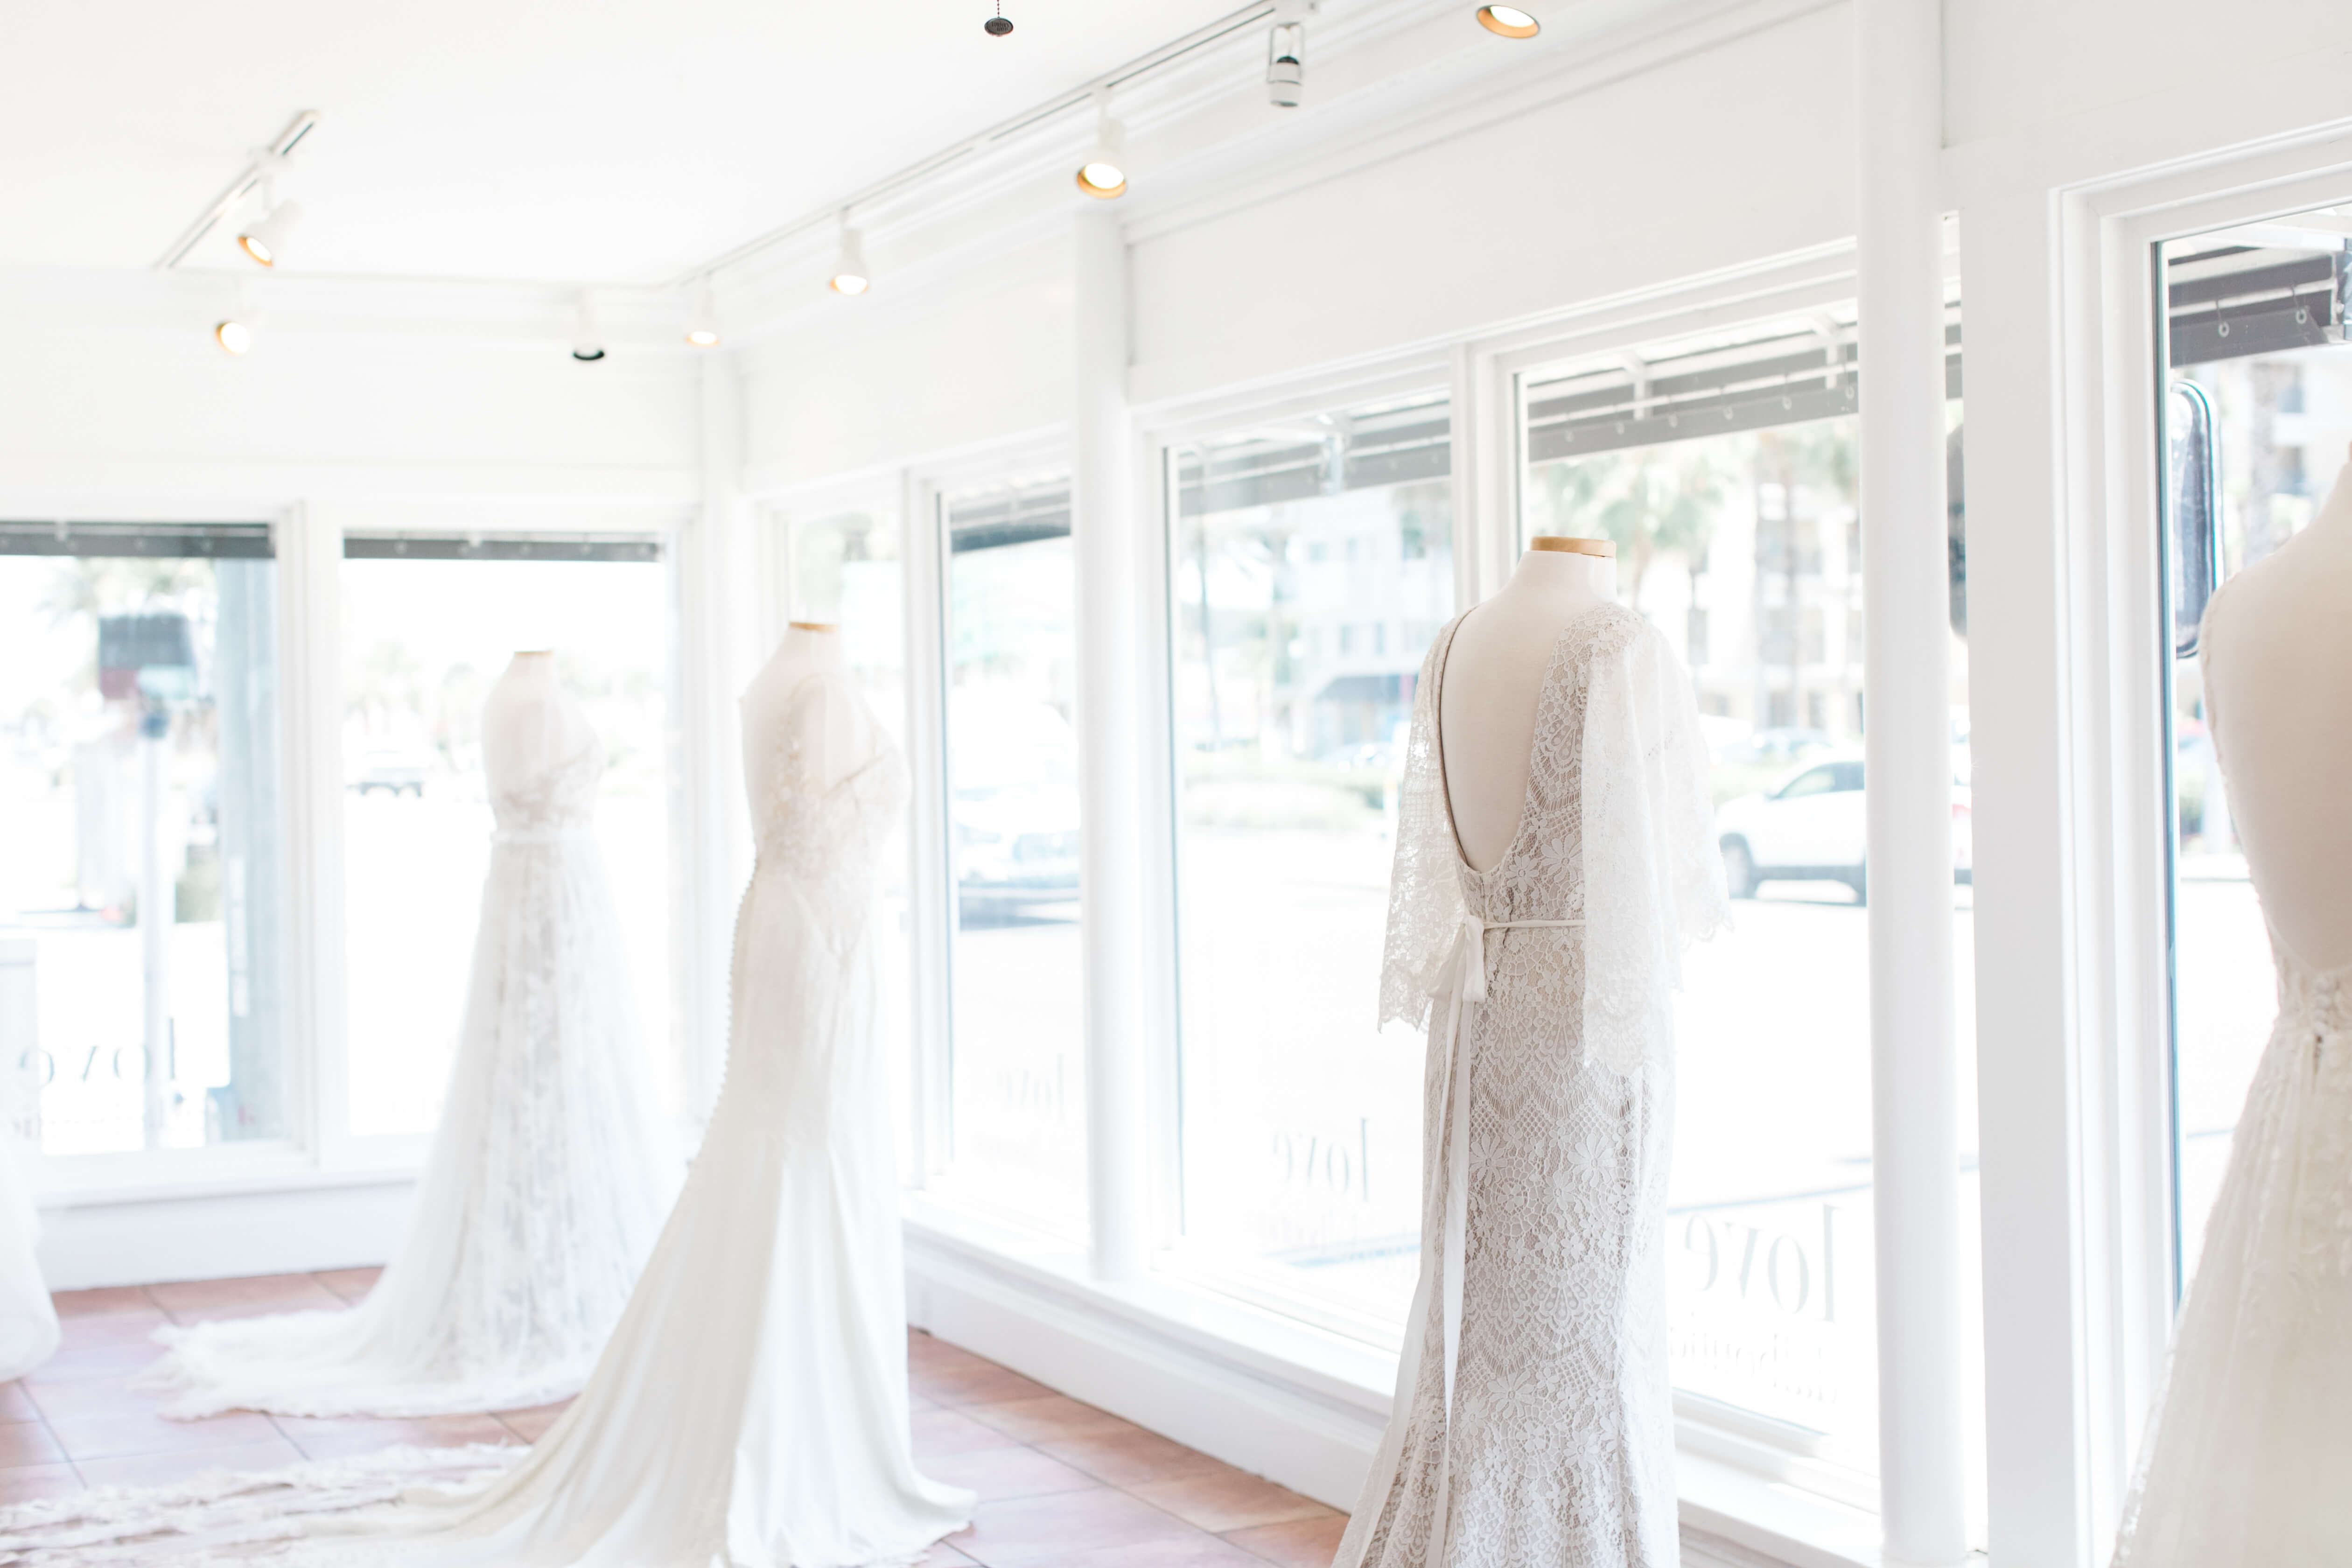 3 Mistakes to Avoid When Shopping for your Wedding Dress